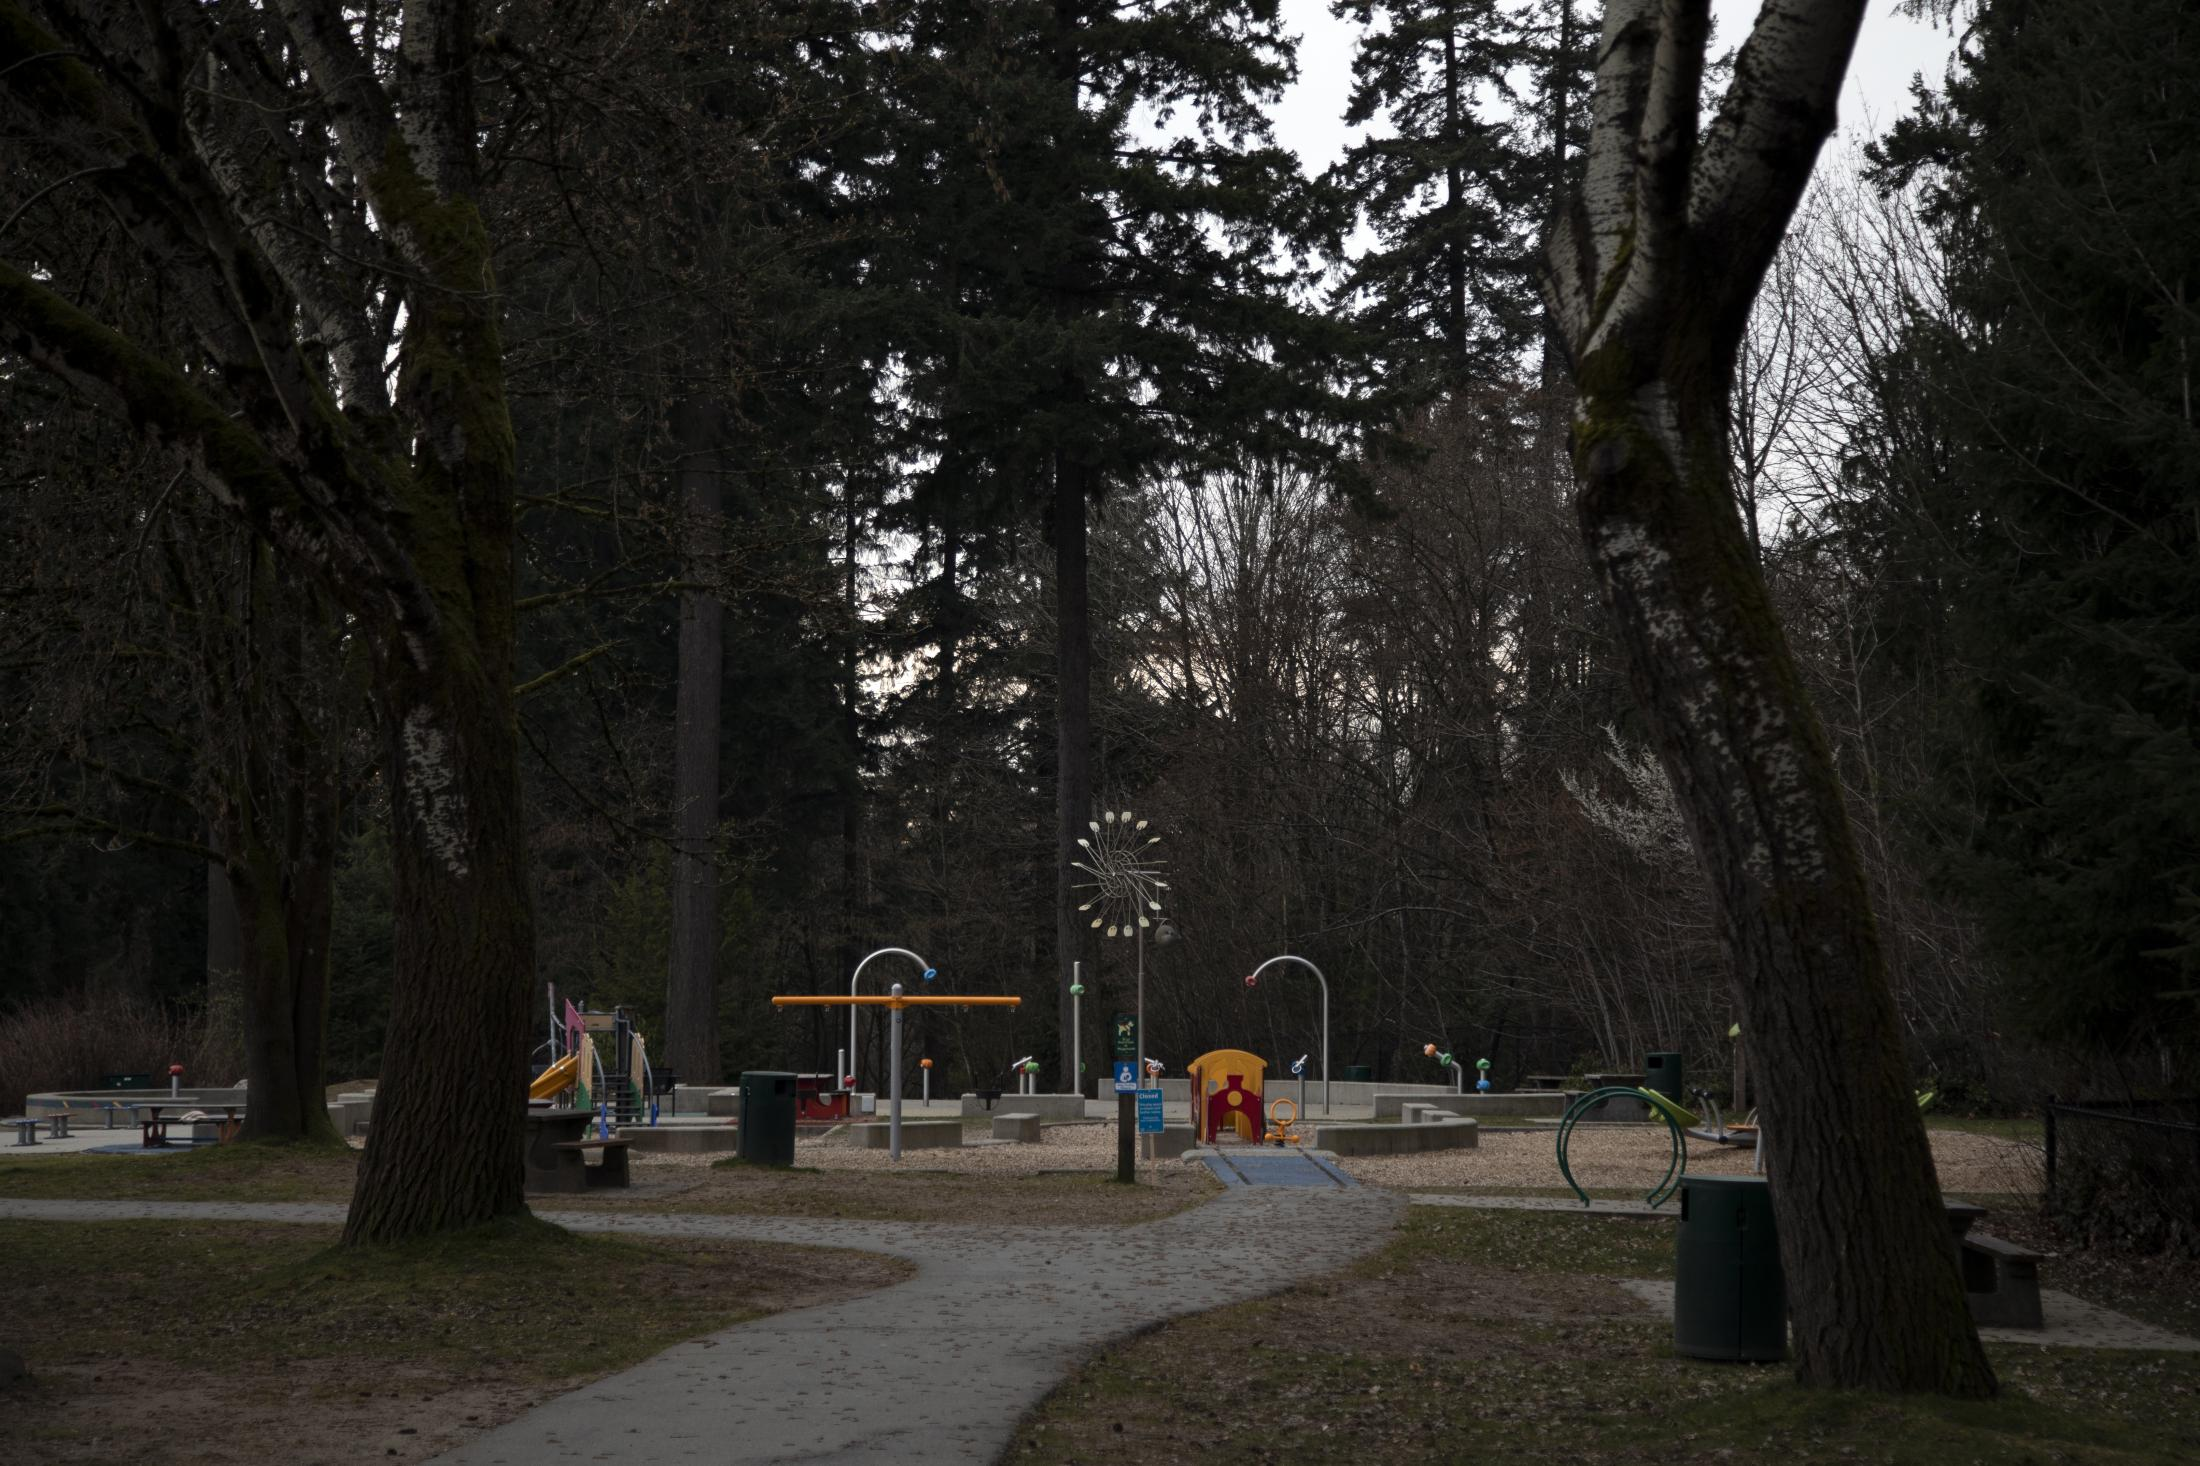 A playground in Mahon Park in North Vancouver, B.C., on Sunday, March 22, 2020. Effective Friday, March 20, 2020, the City and District of North Vancouver have closed all playgrounds and playing fields in an attempt to curb the spread of COVID-19. North Vancouver has been a hotspot of COVID-19, with ten deaths connected to the Lynn Valley Care Centre as of Monday, March 23, 2020.